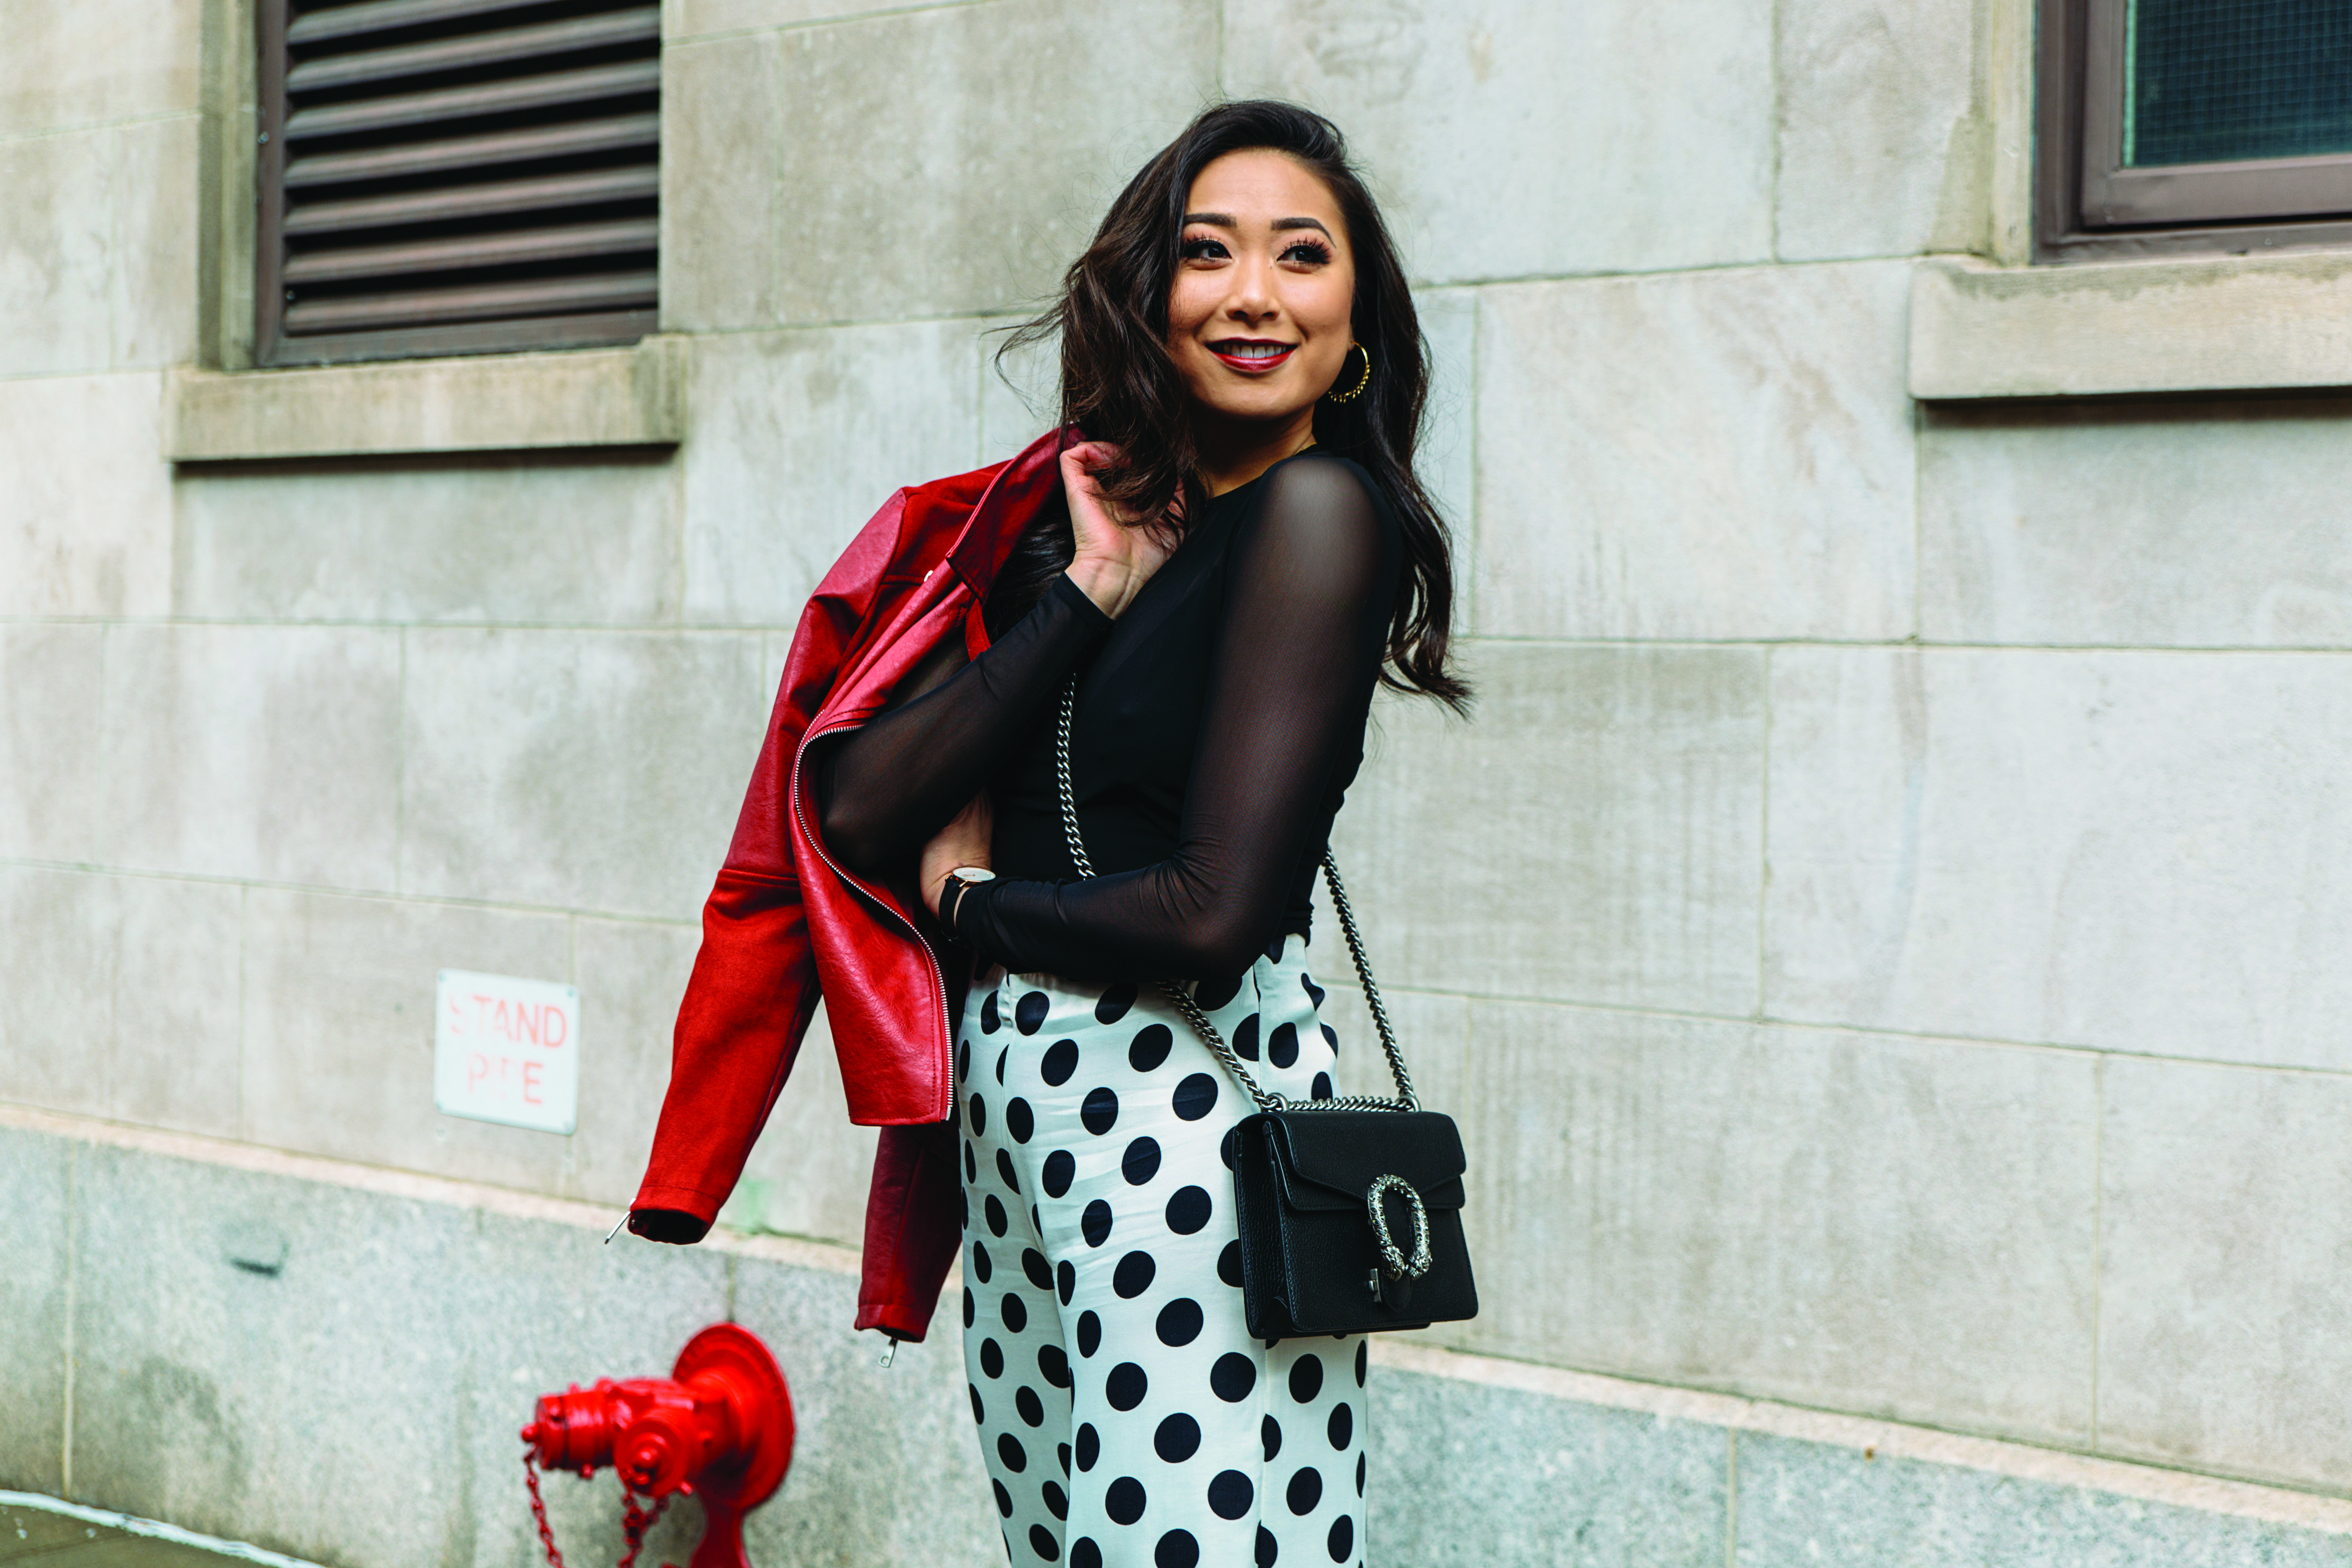 Complexions' Resident Fashionista Candy Tong Sports Swimwear in the Studio and Heels on the Street